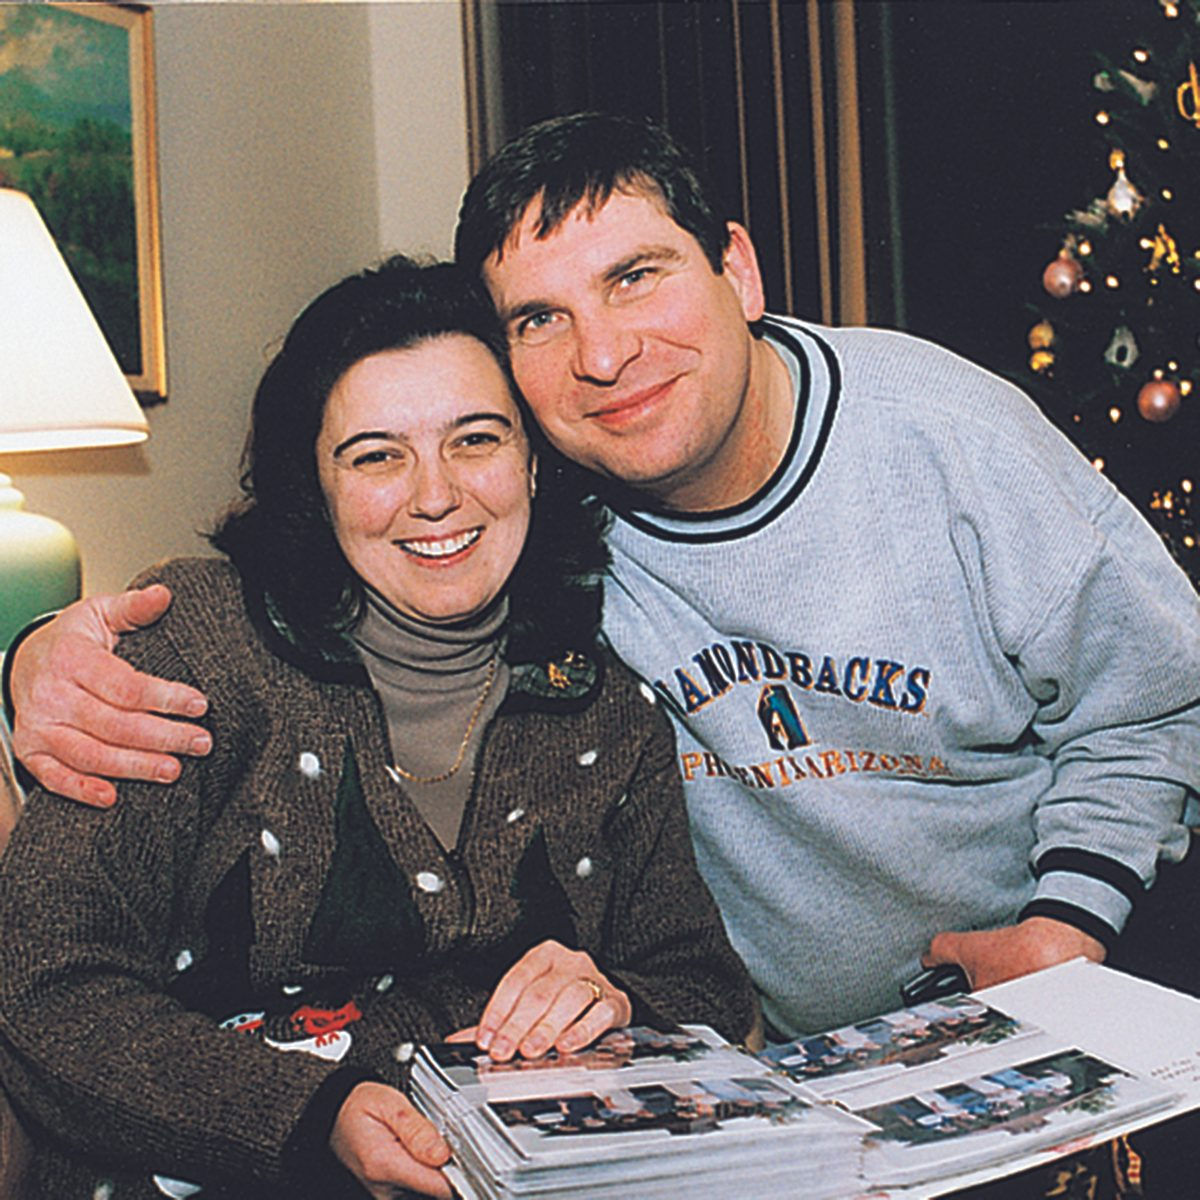 Man and woman hugging over a photo book of Christmas memories